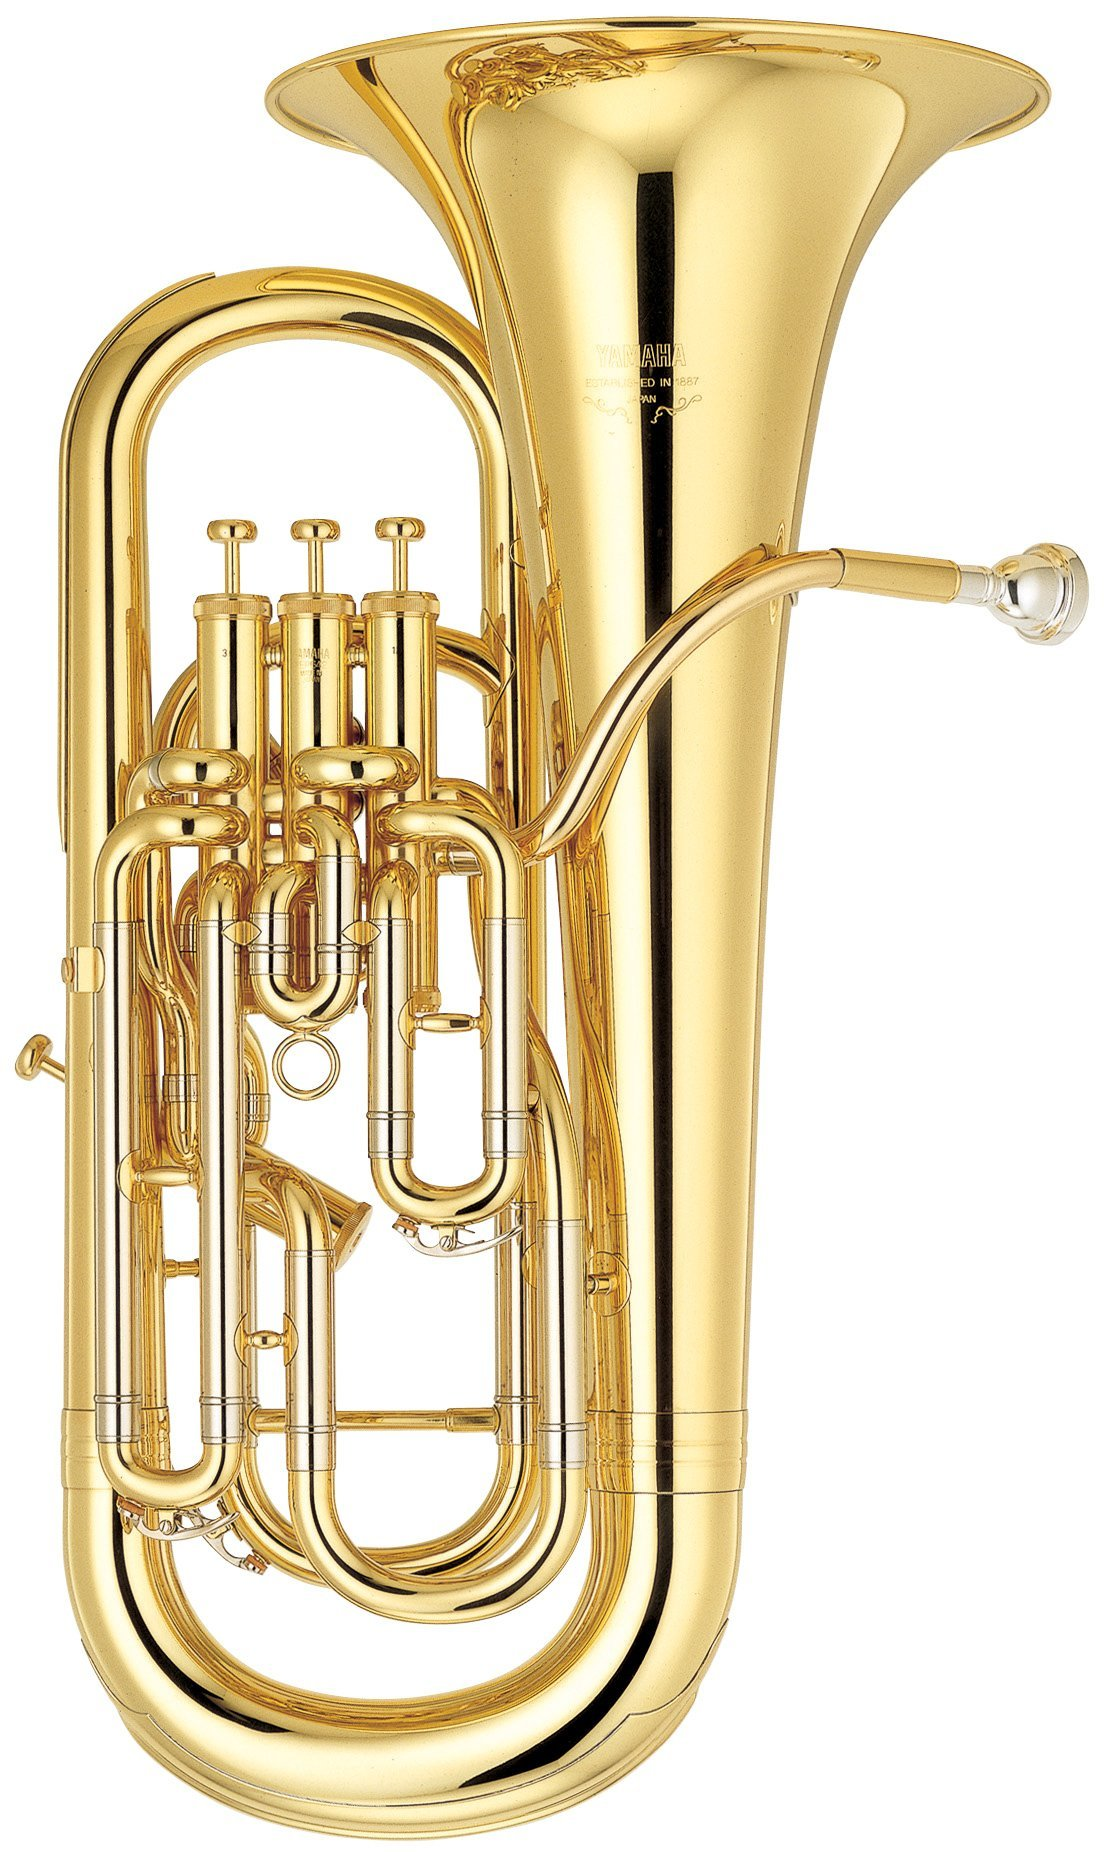 yep 642sii overview euphoniums brass woodwinds musical instruments products yamaha. Black Bedroom Furniture Sets. Home Design Ideas